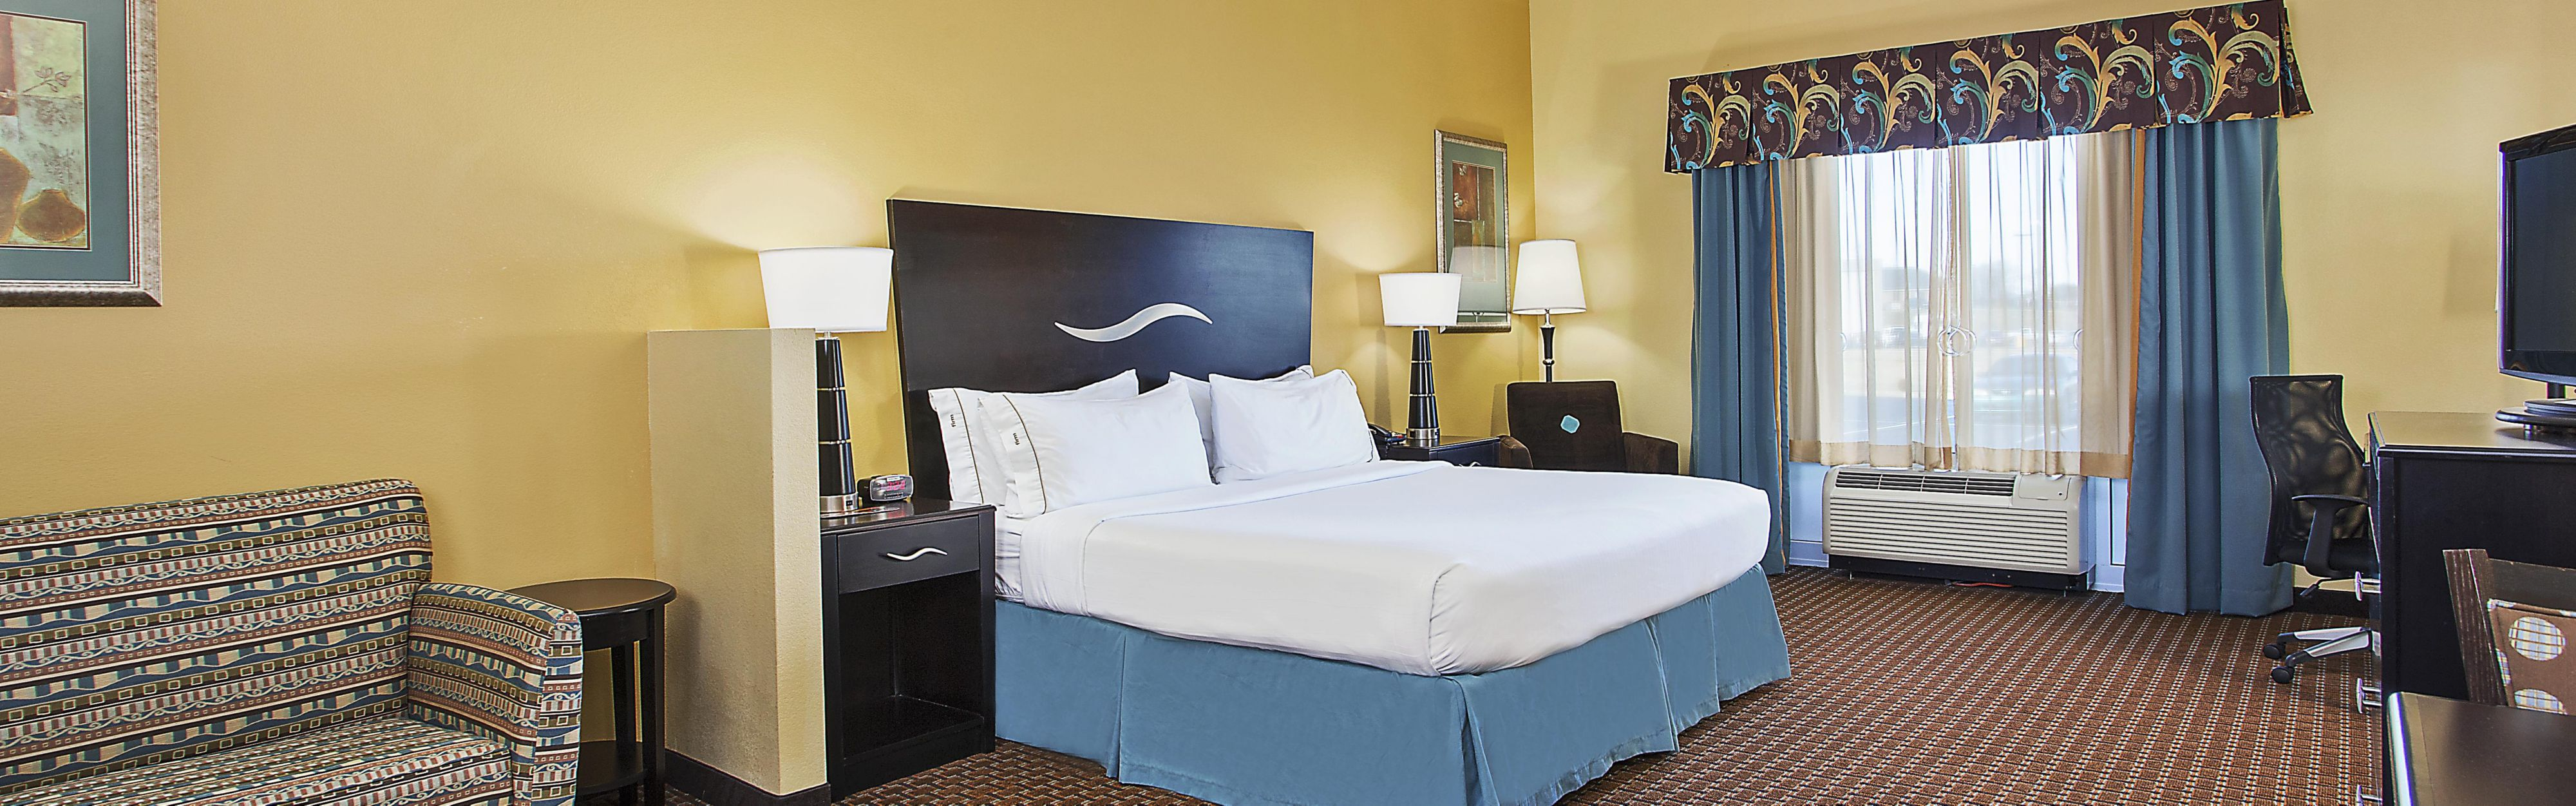 Holiday Inn Express & Suites Somerset Central image 1